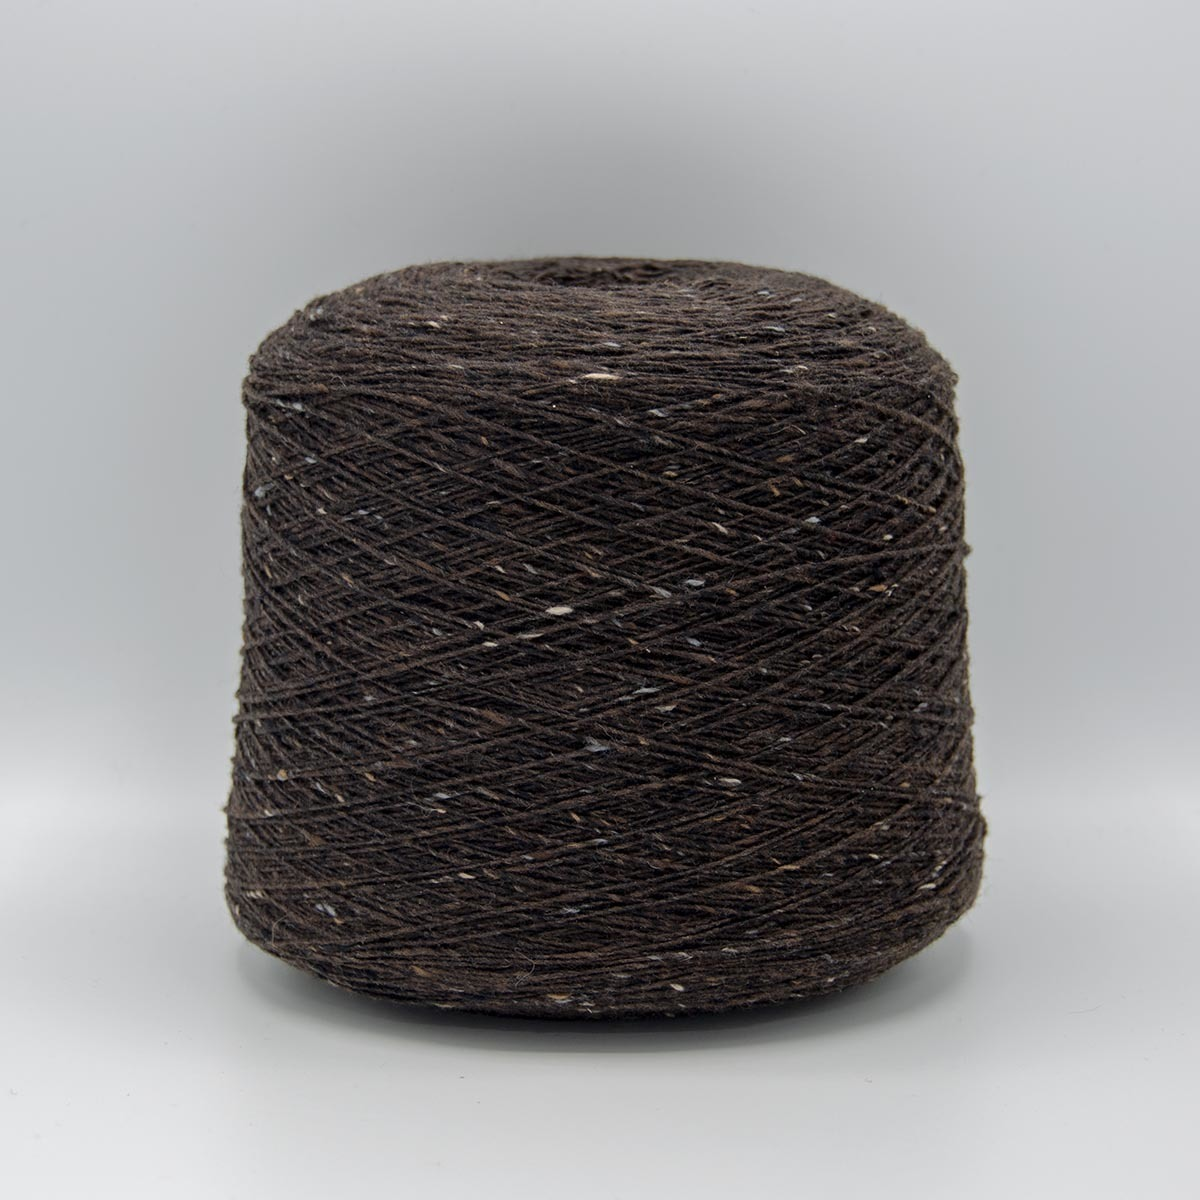 Knoll Yarns Soft Donegal (одинарный твид) - 5513